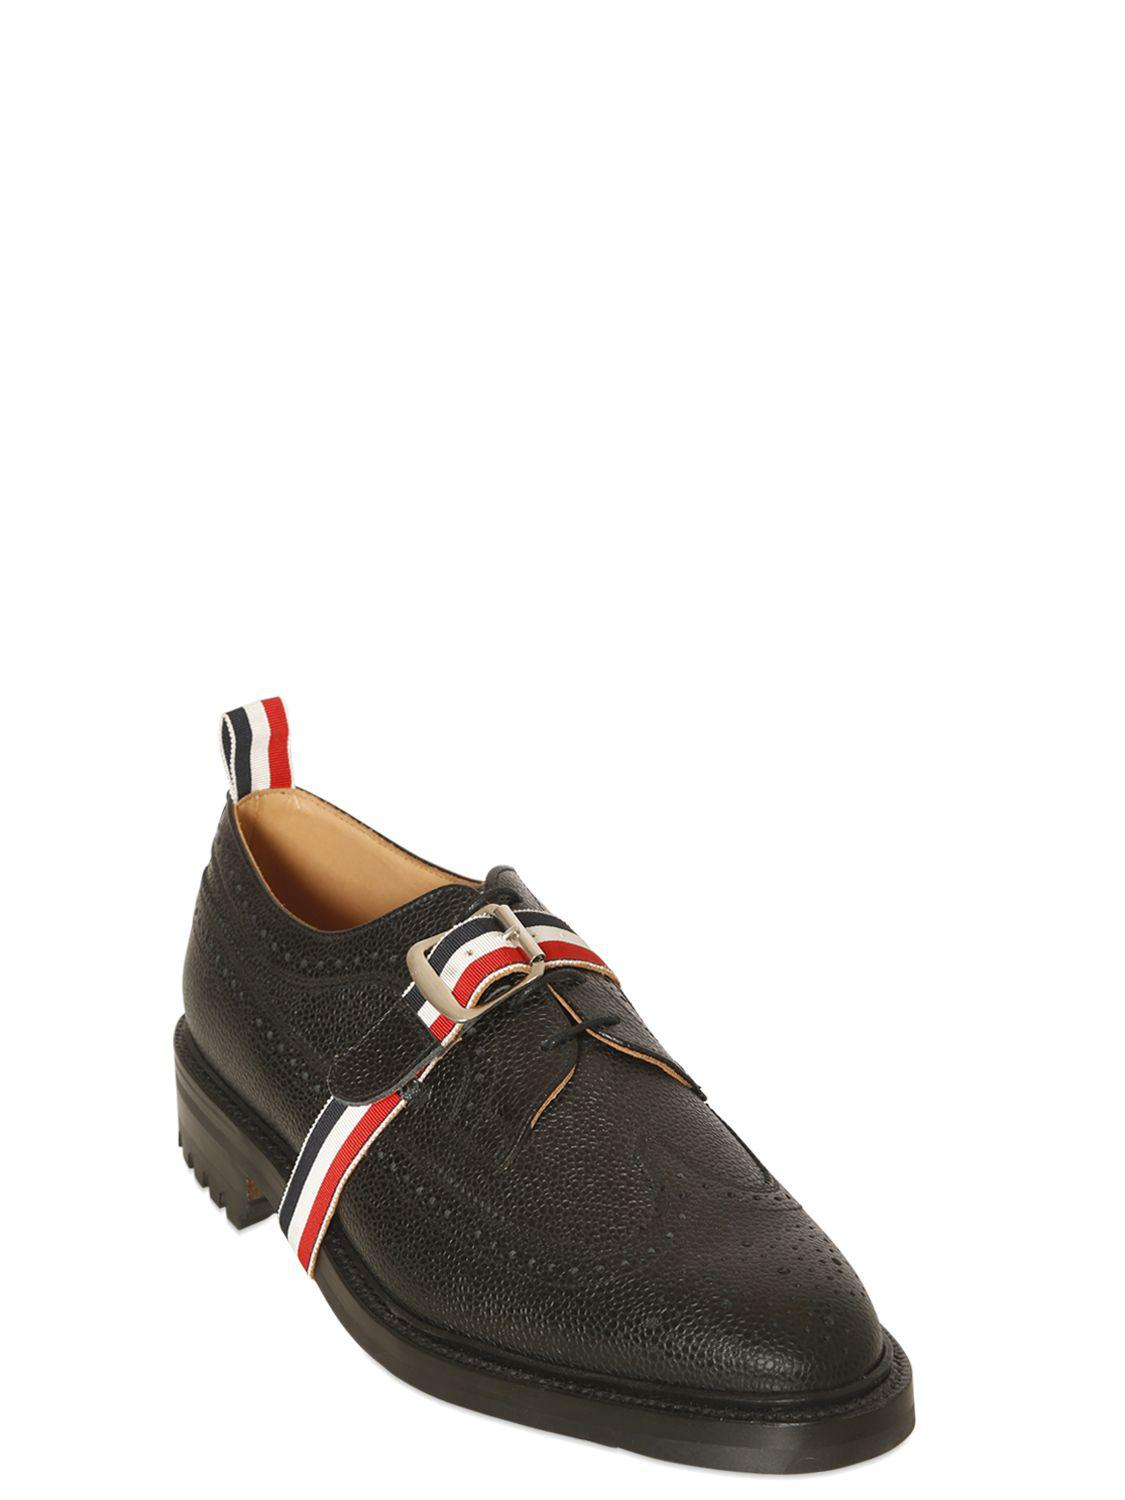 Thom Browne BELTED PEBBLE LEATHER DERBY SHOES yAfykue